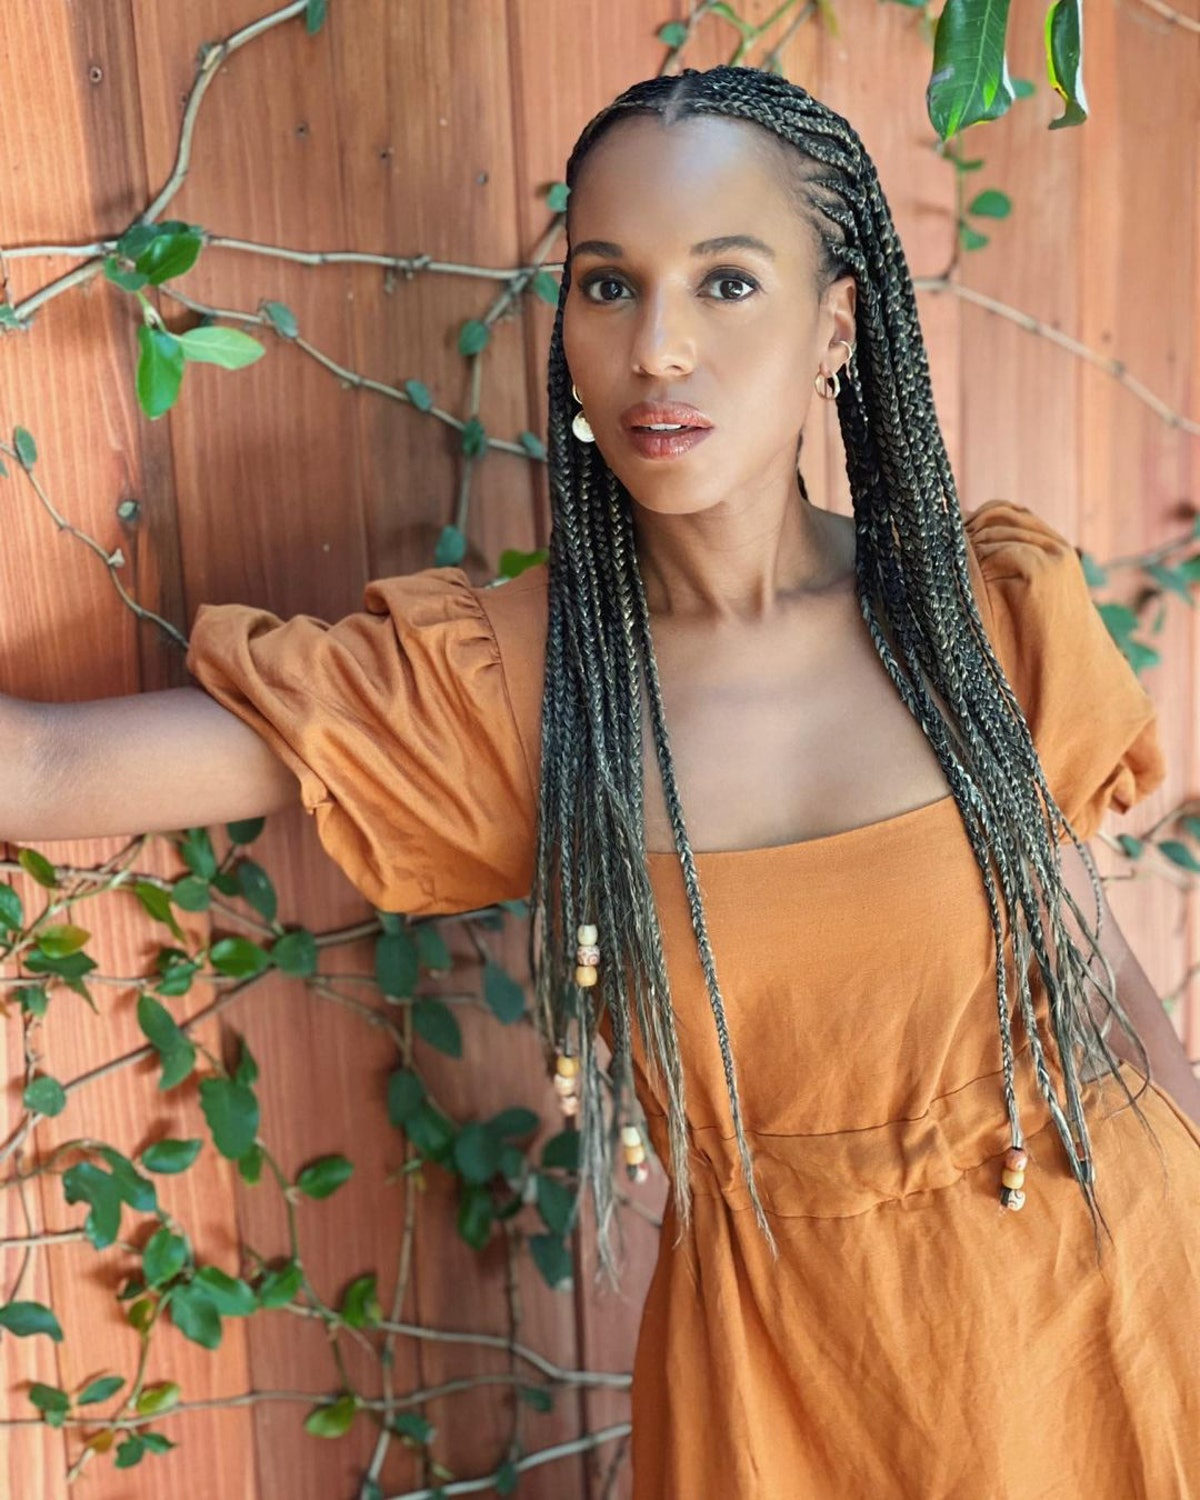 Kerry Washington with blonde feed-in braids